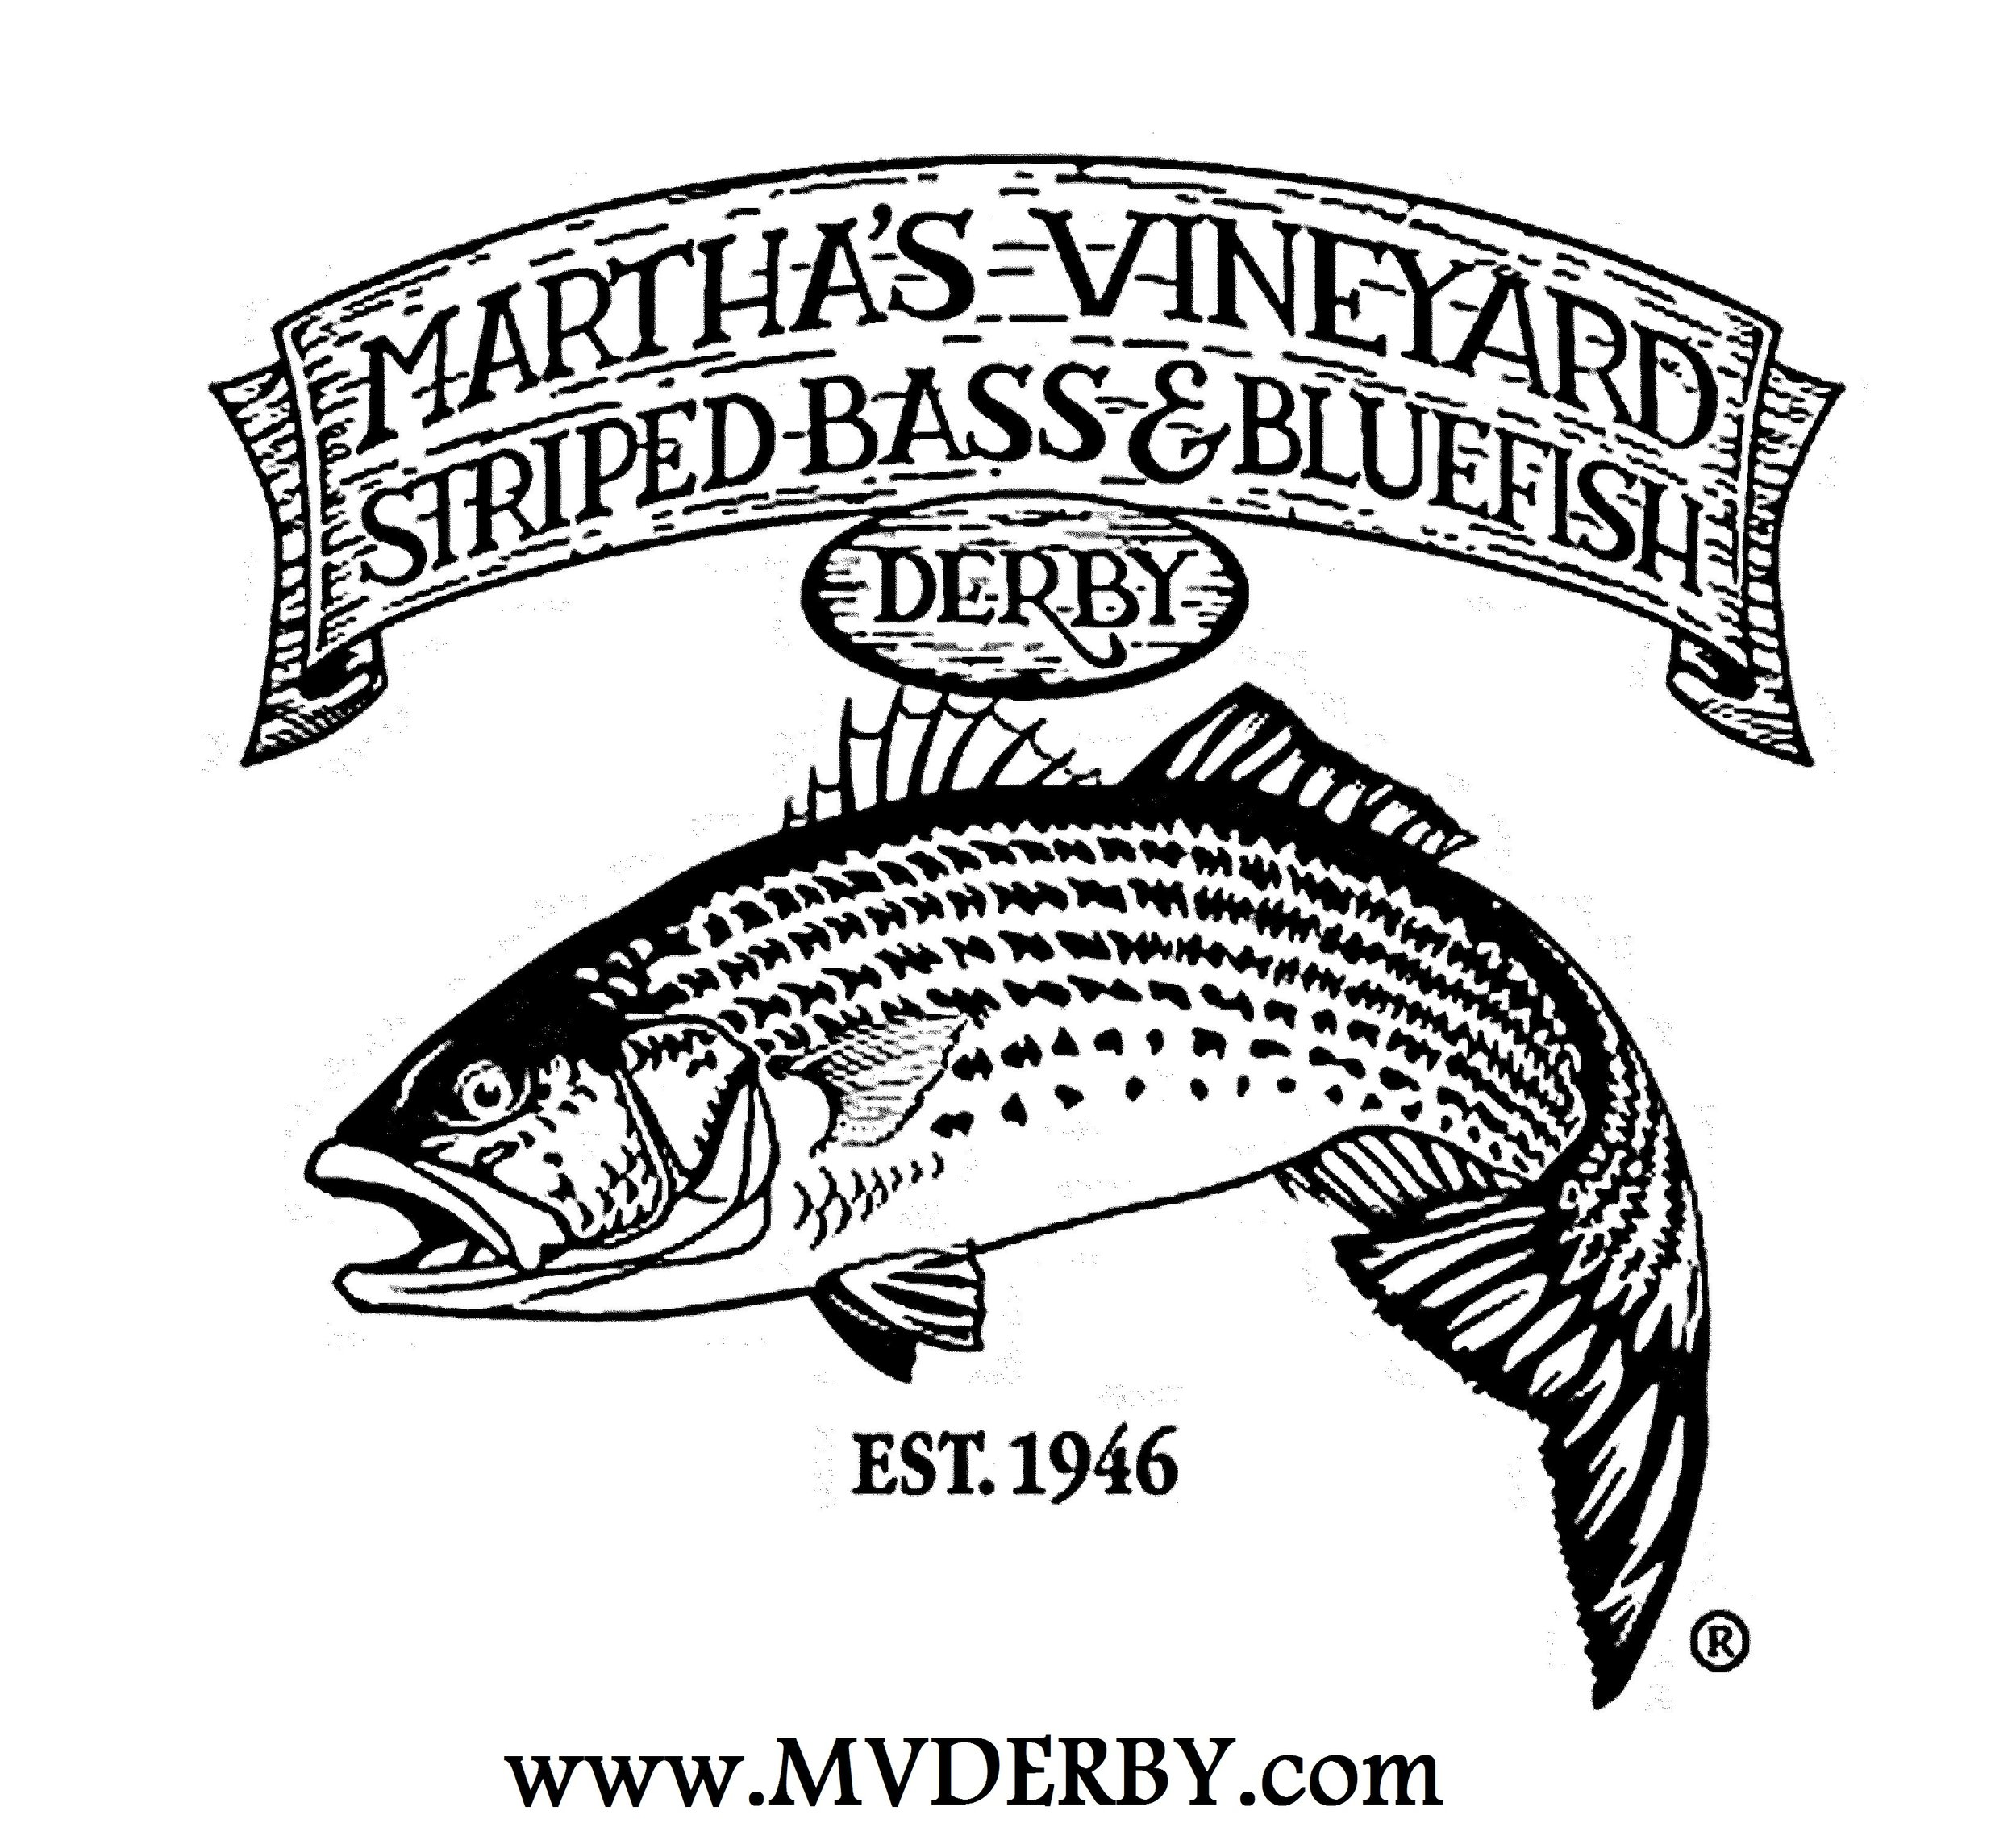 MVSB&BDerby logo WITH WEBSITE.jpg